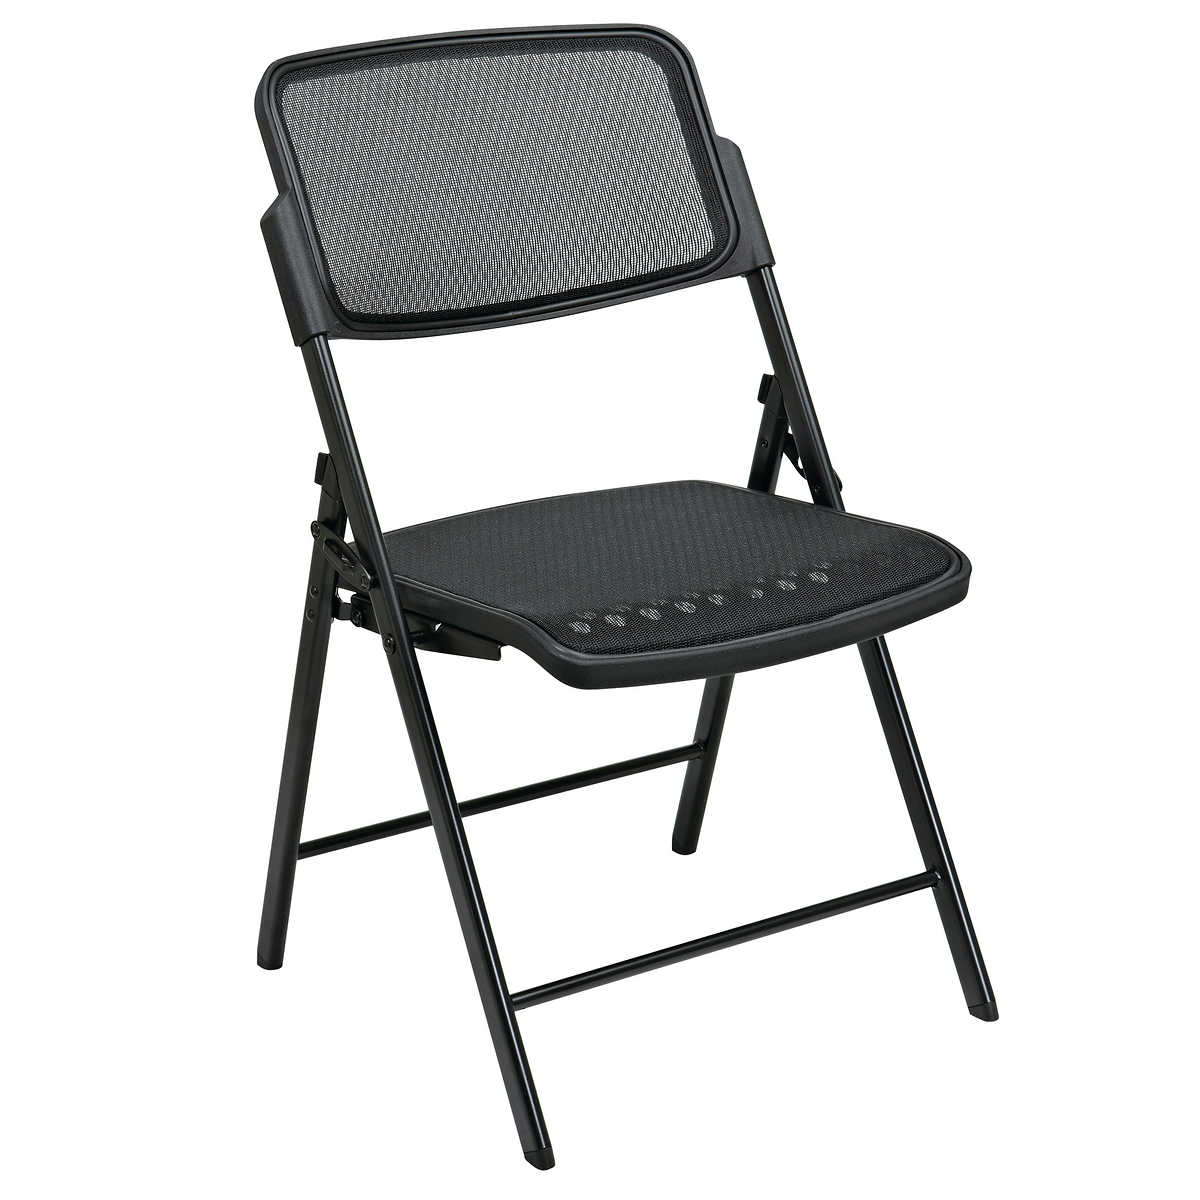 Padded Banquet Chairs folding & stacking | costco